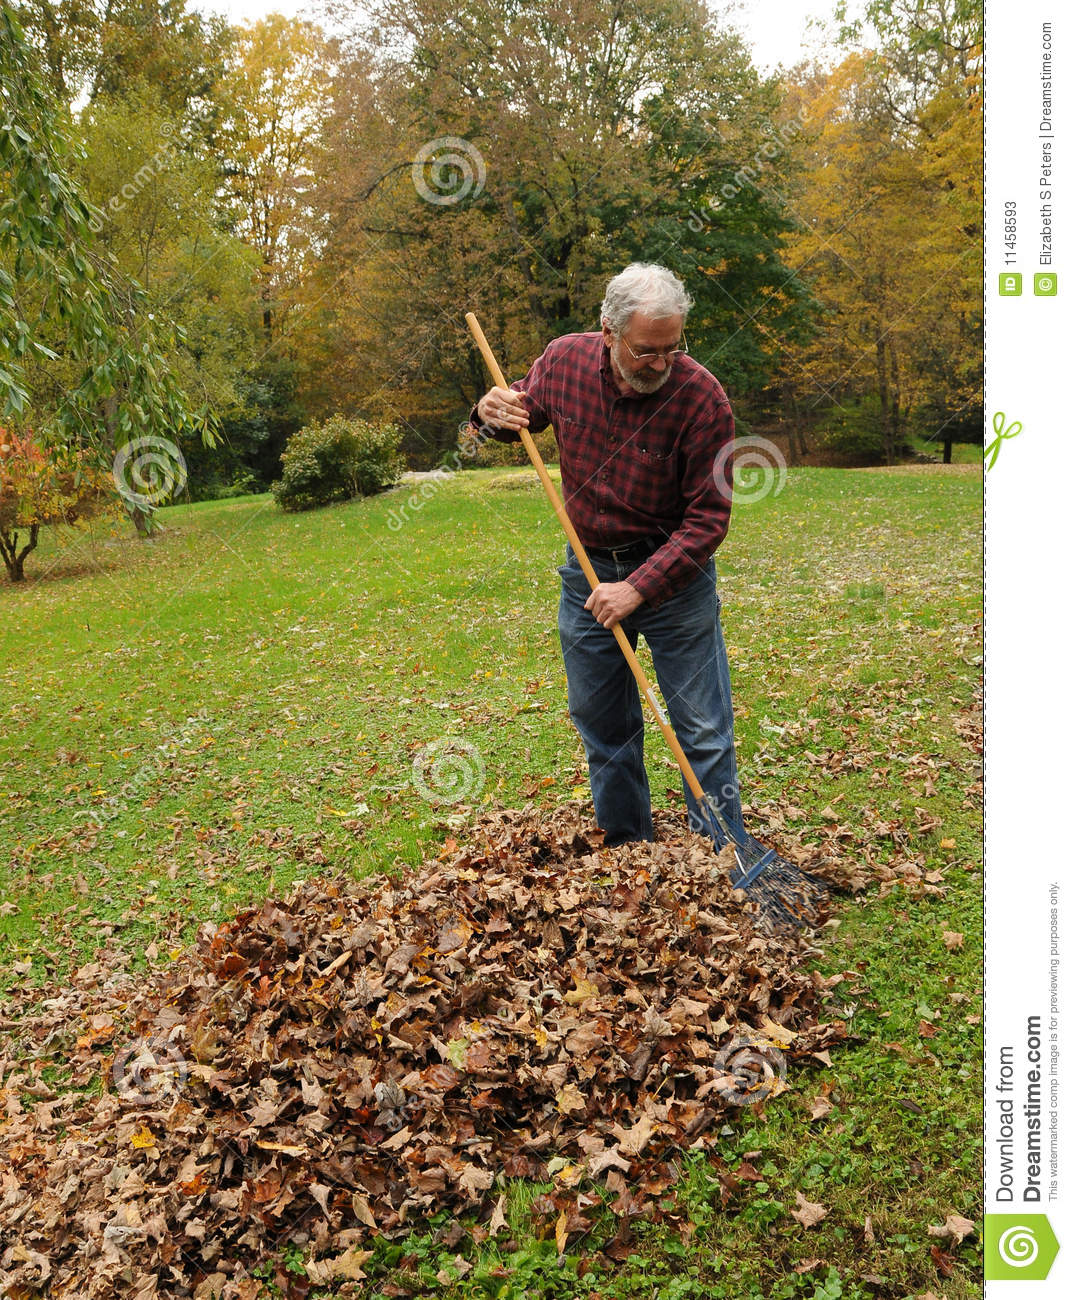 Raking Leaves Stock Photos - Image: 11458593